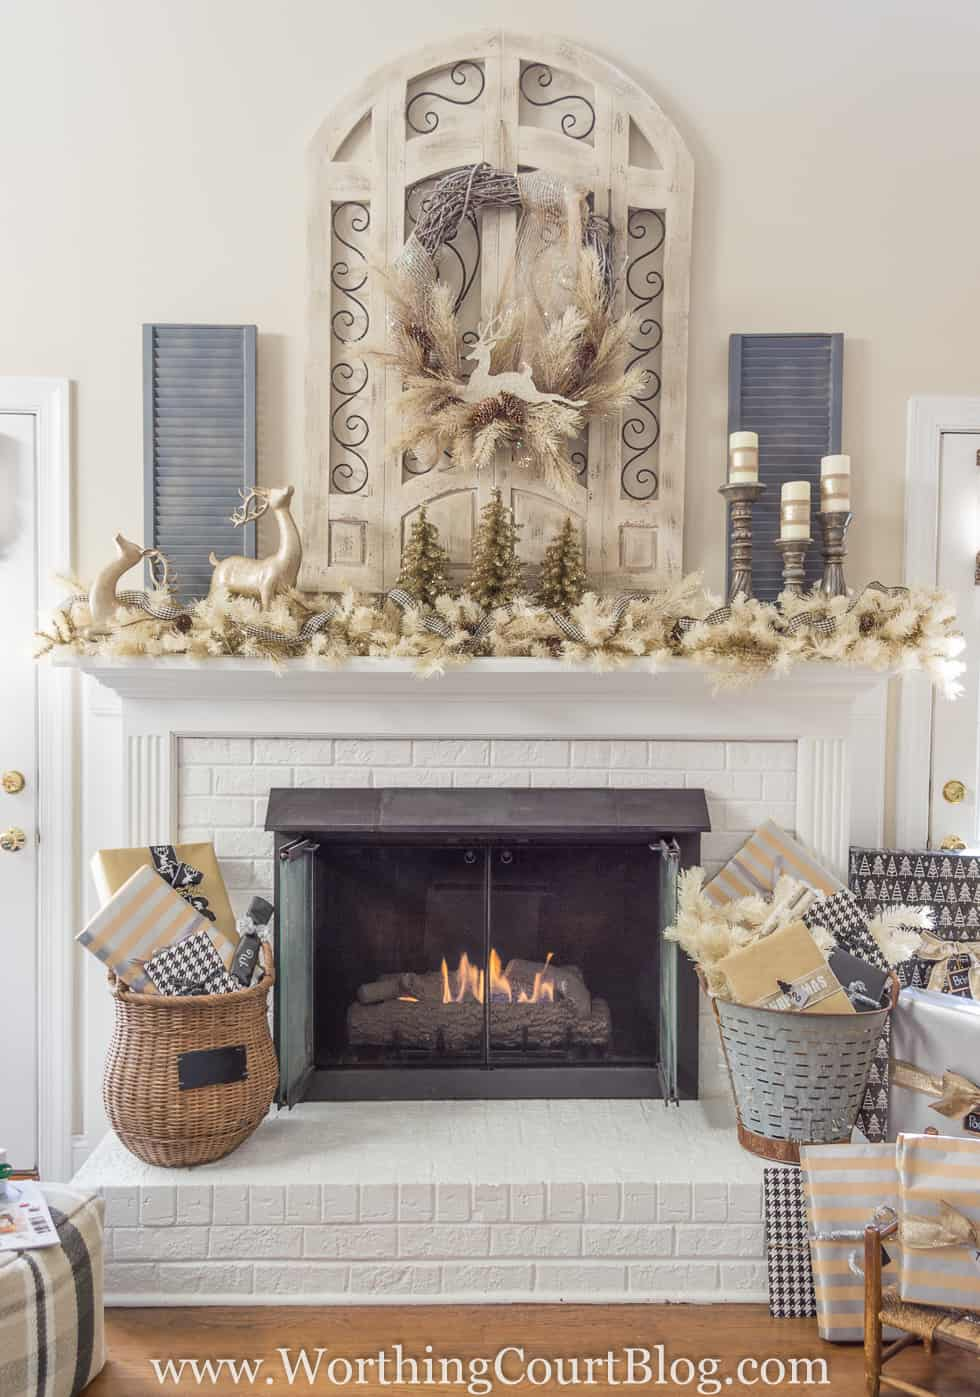 A white fireplace with baskets flanking the sides of it and a mantel decorated for Christmas.